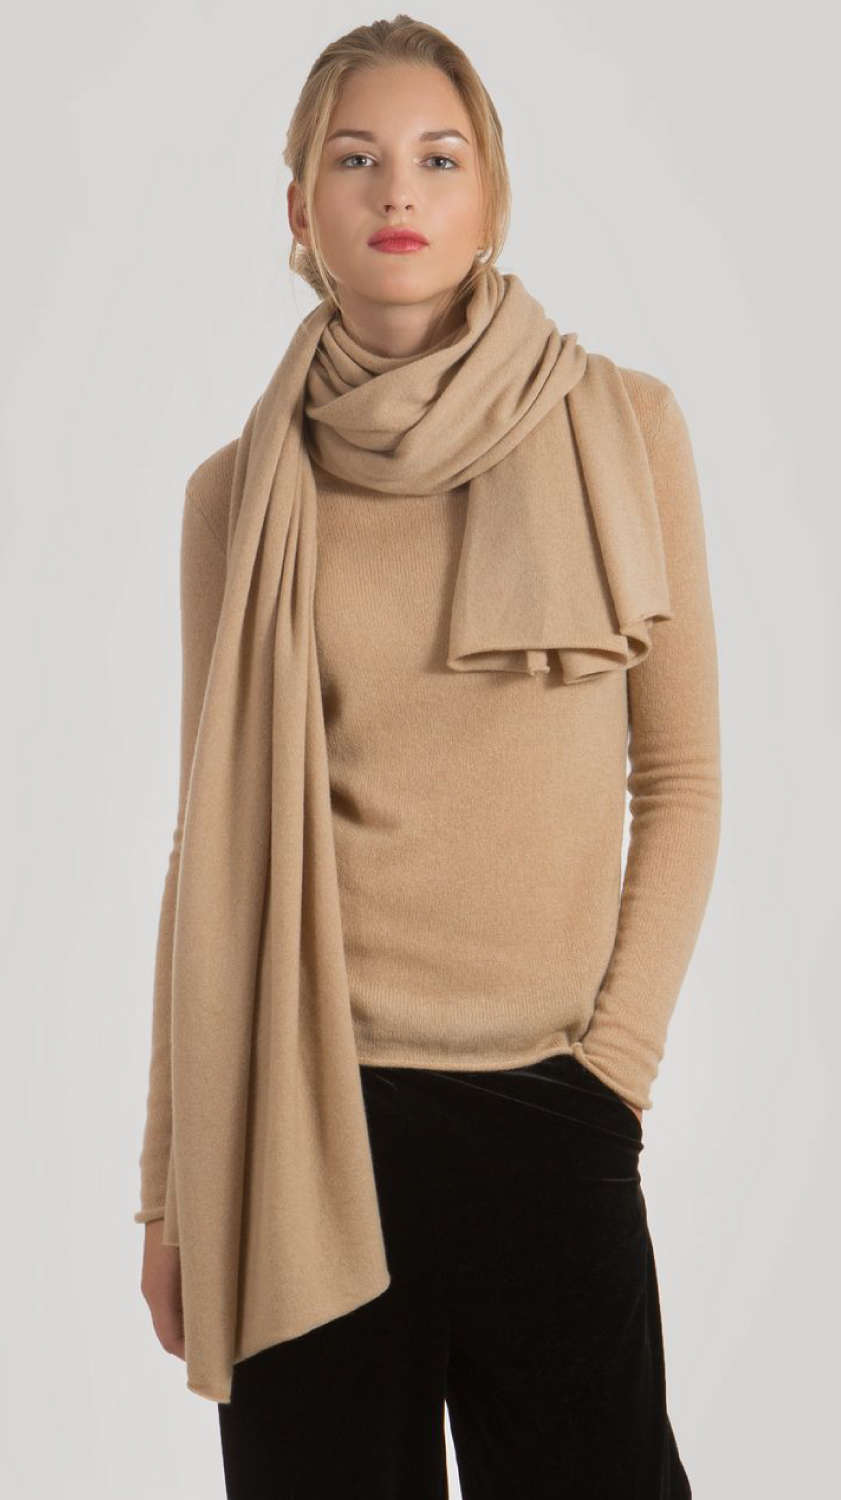 Find great deals on eBay for camel scarf. Shop with confidence.